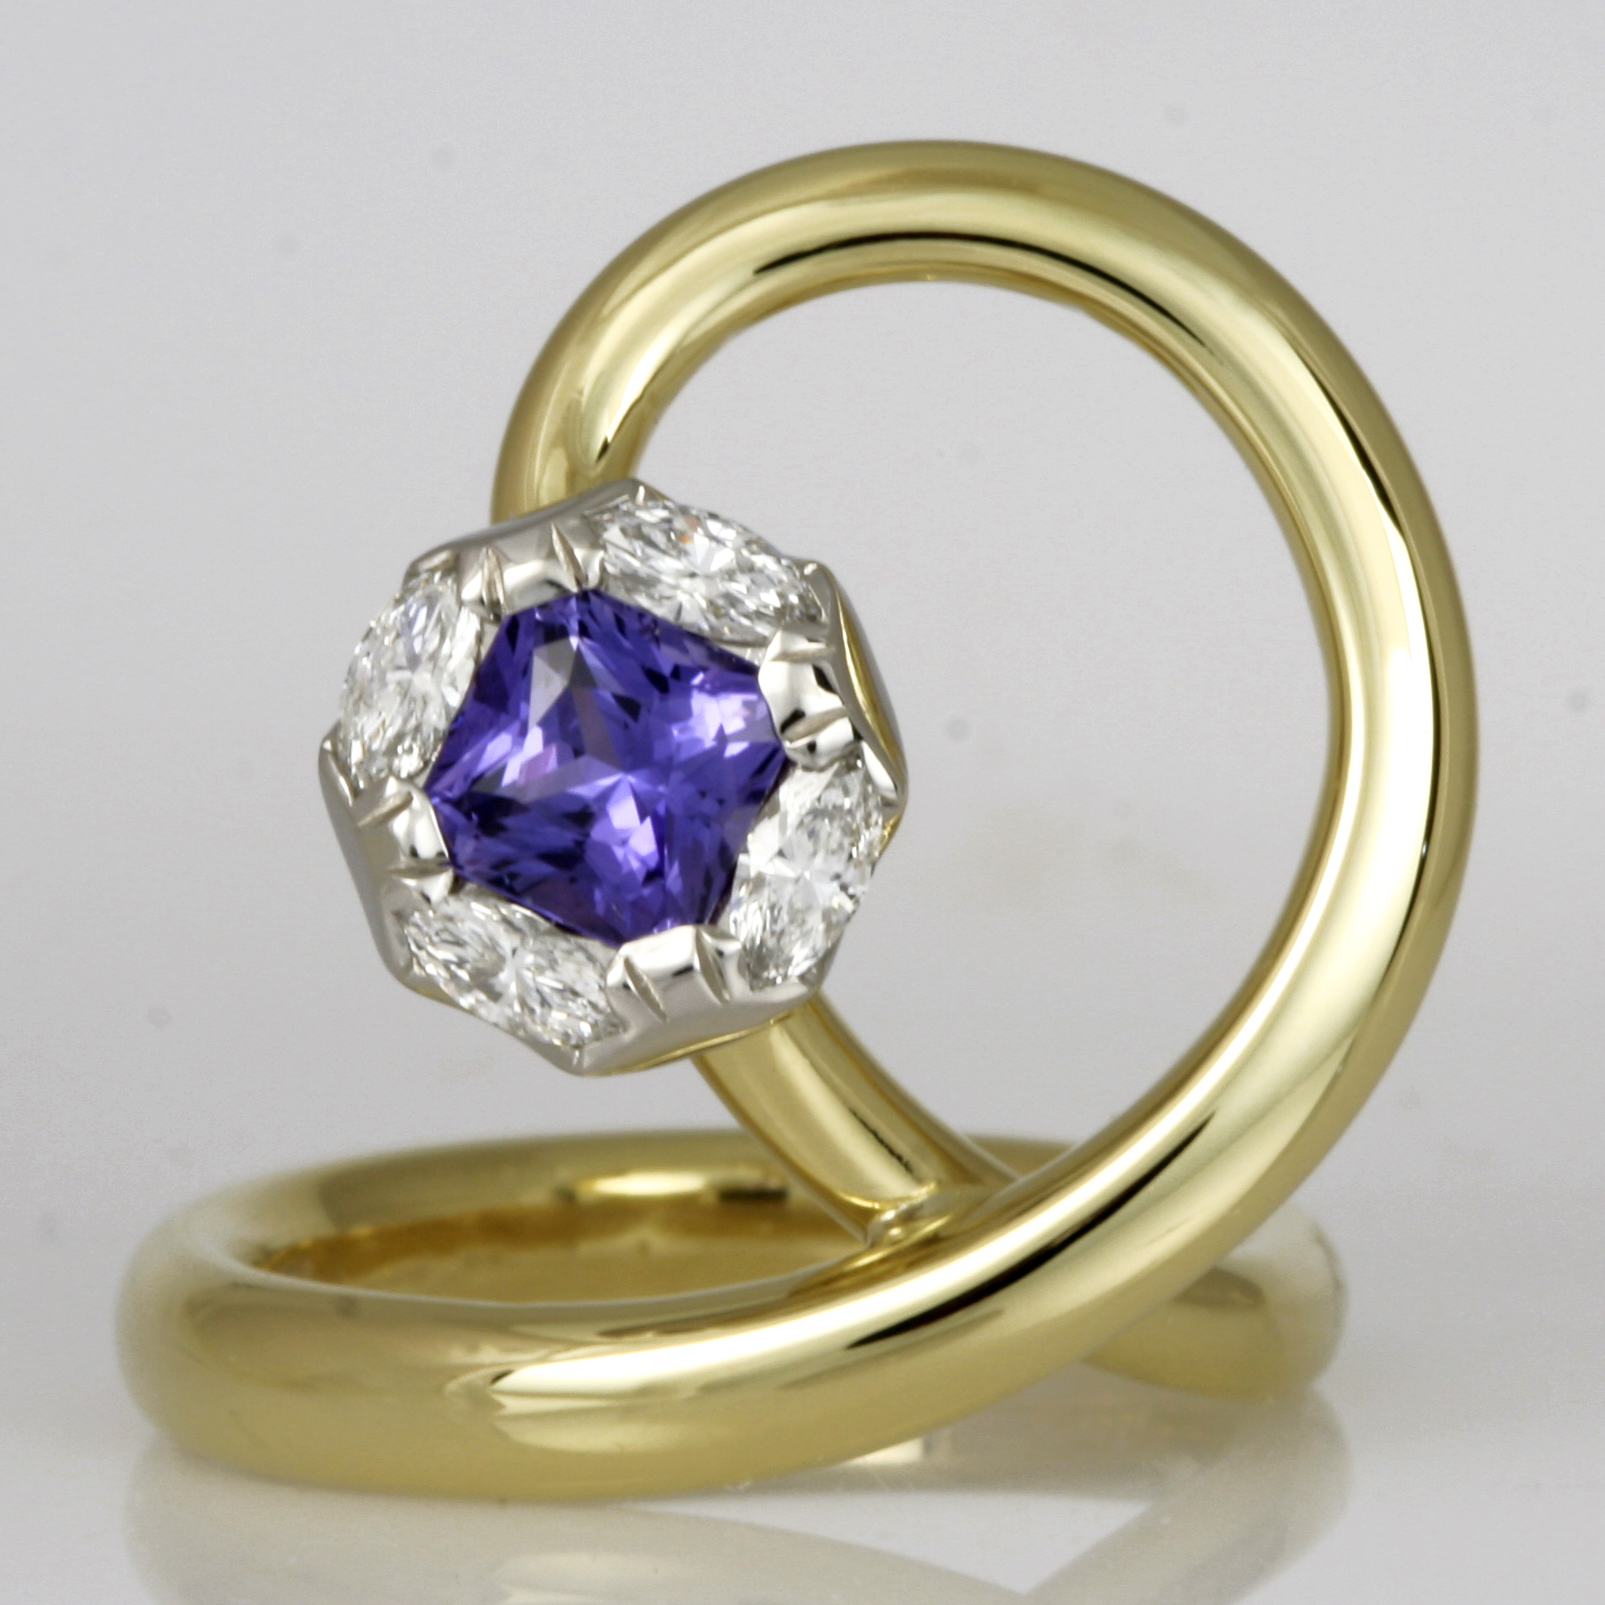 Handmade ladies 18ct green gold and palladium ring featuring a square radiant cut purple sapphire and marquise diamonds